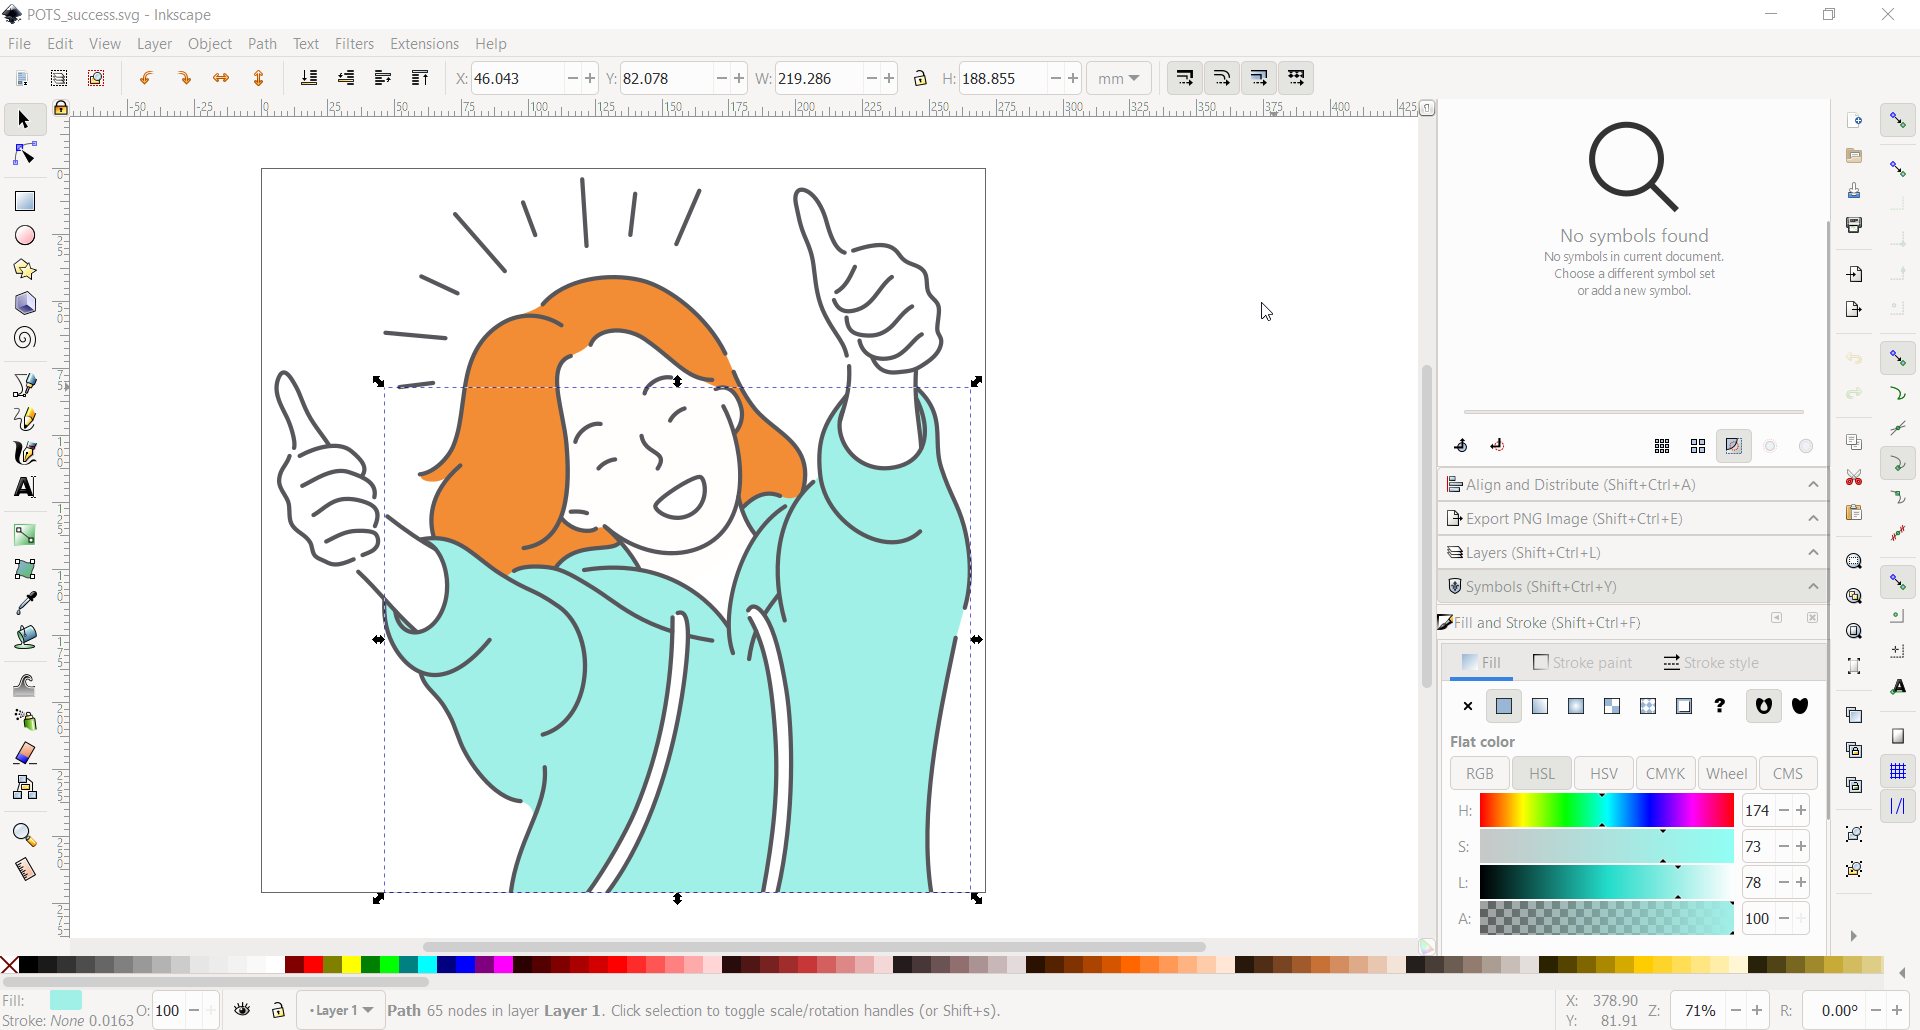 Vector graphic being edited in Inkscape